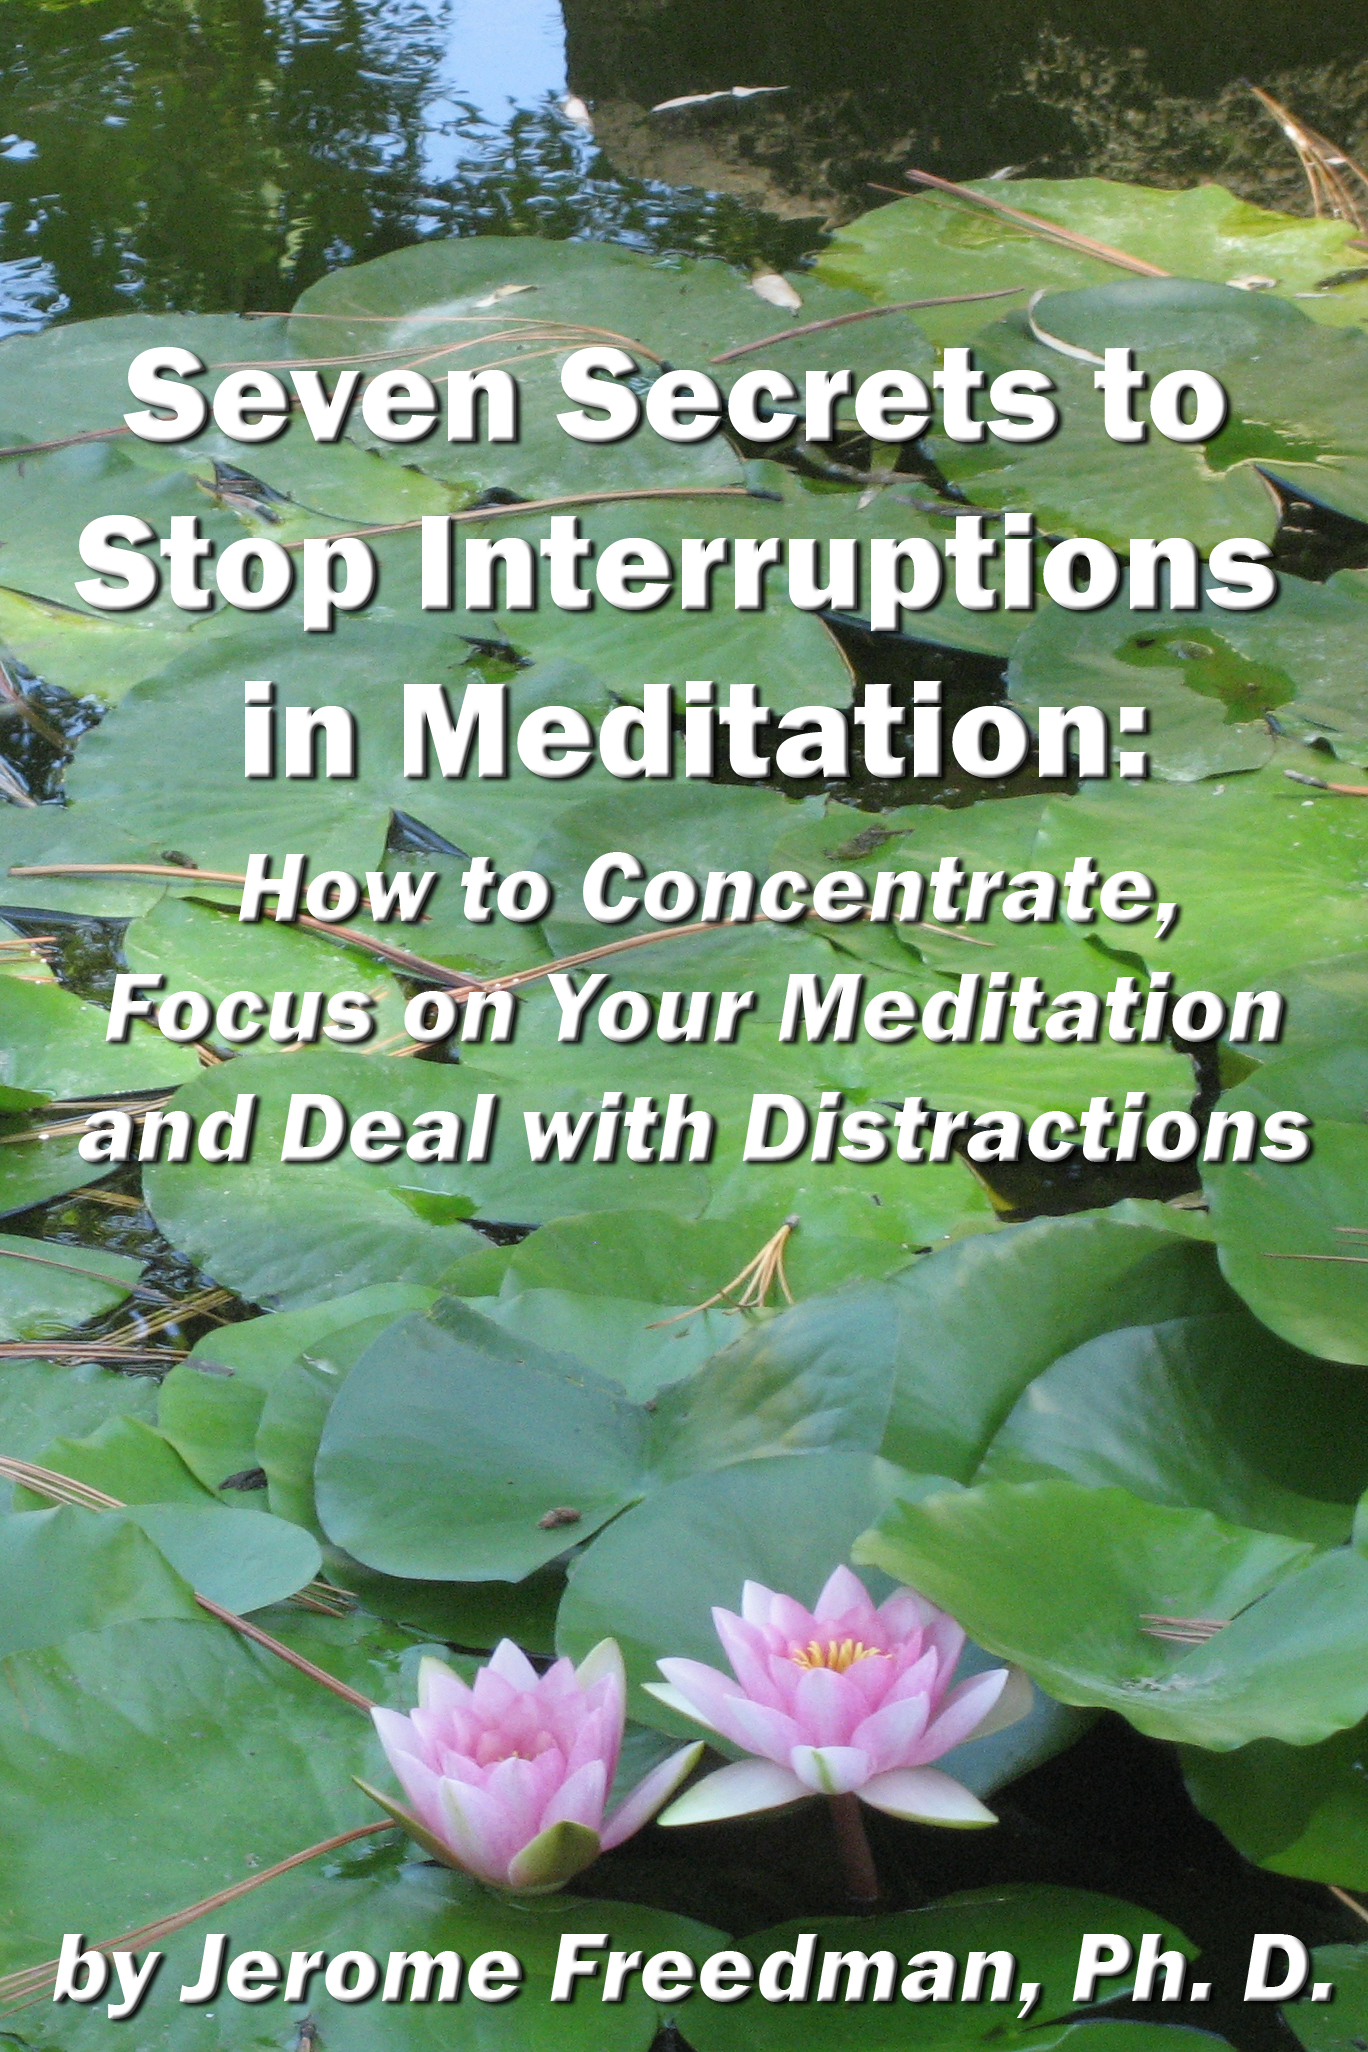 Seven Secrets to Stop Interruptions in Meditation